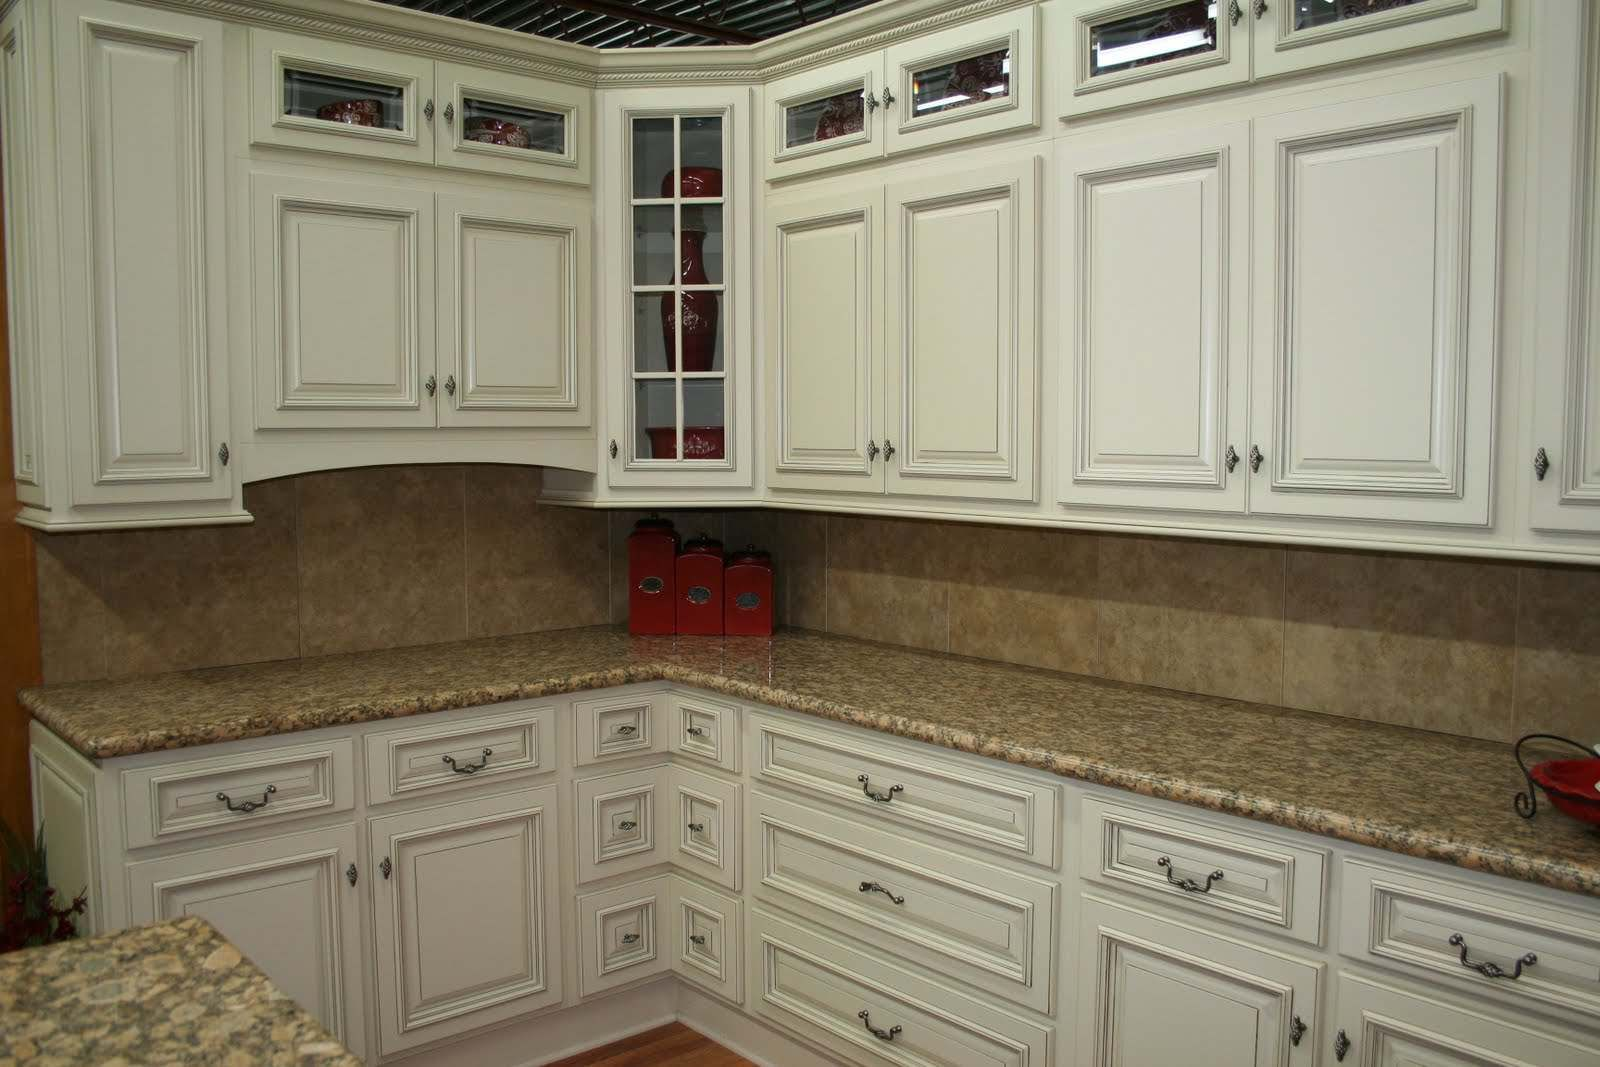 Kitchen Cabinets And Pulls Off White Kitchen Cabinets Kitchen Cabinet Design Antique White Kitchen Cabinets